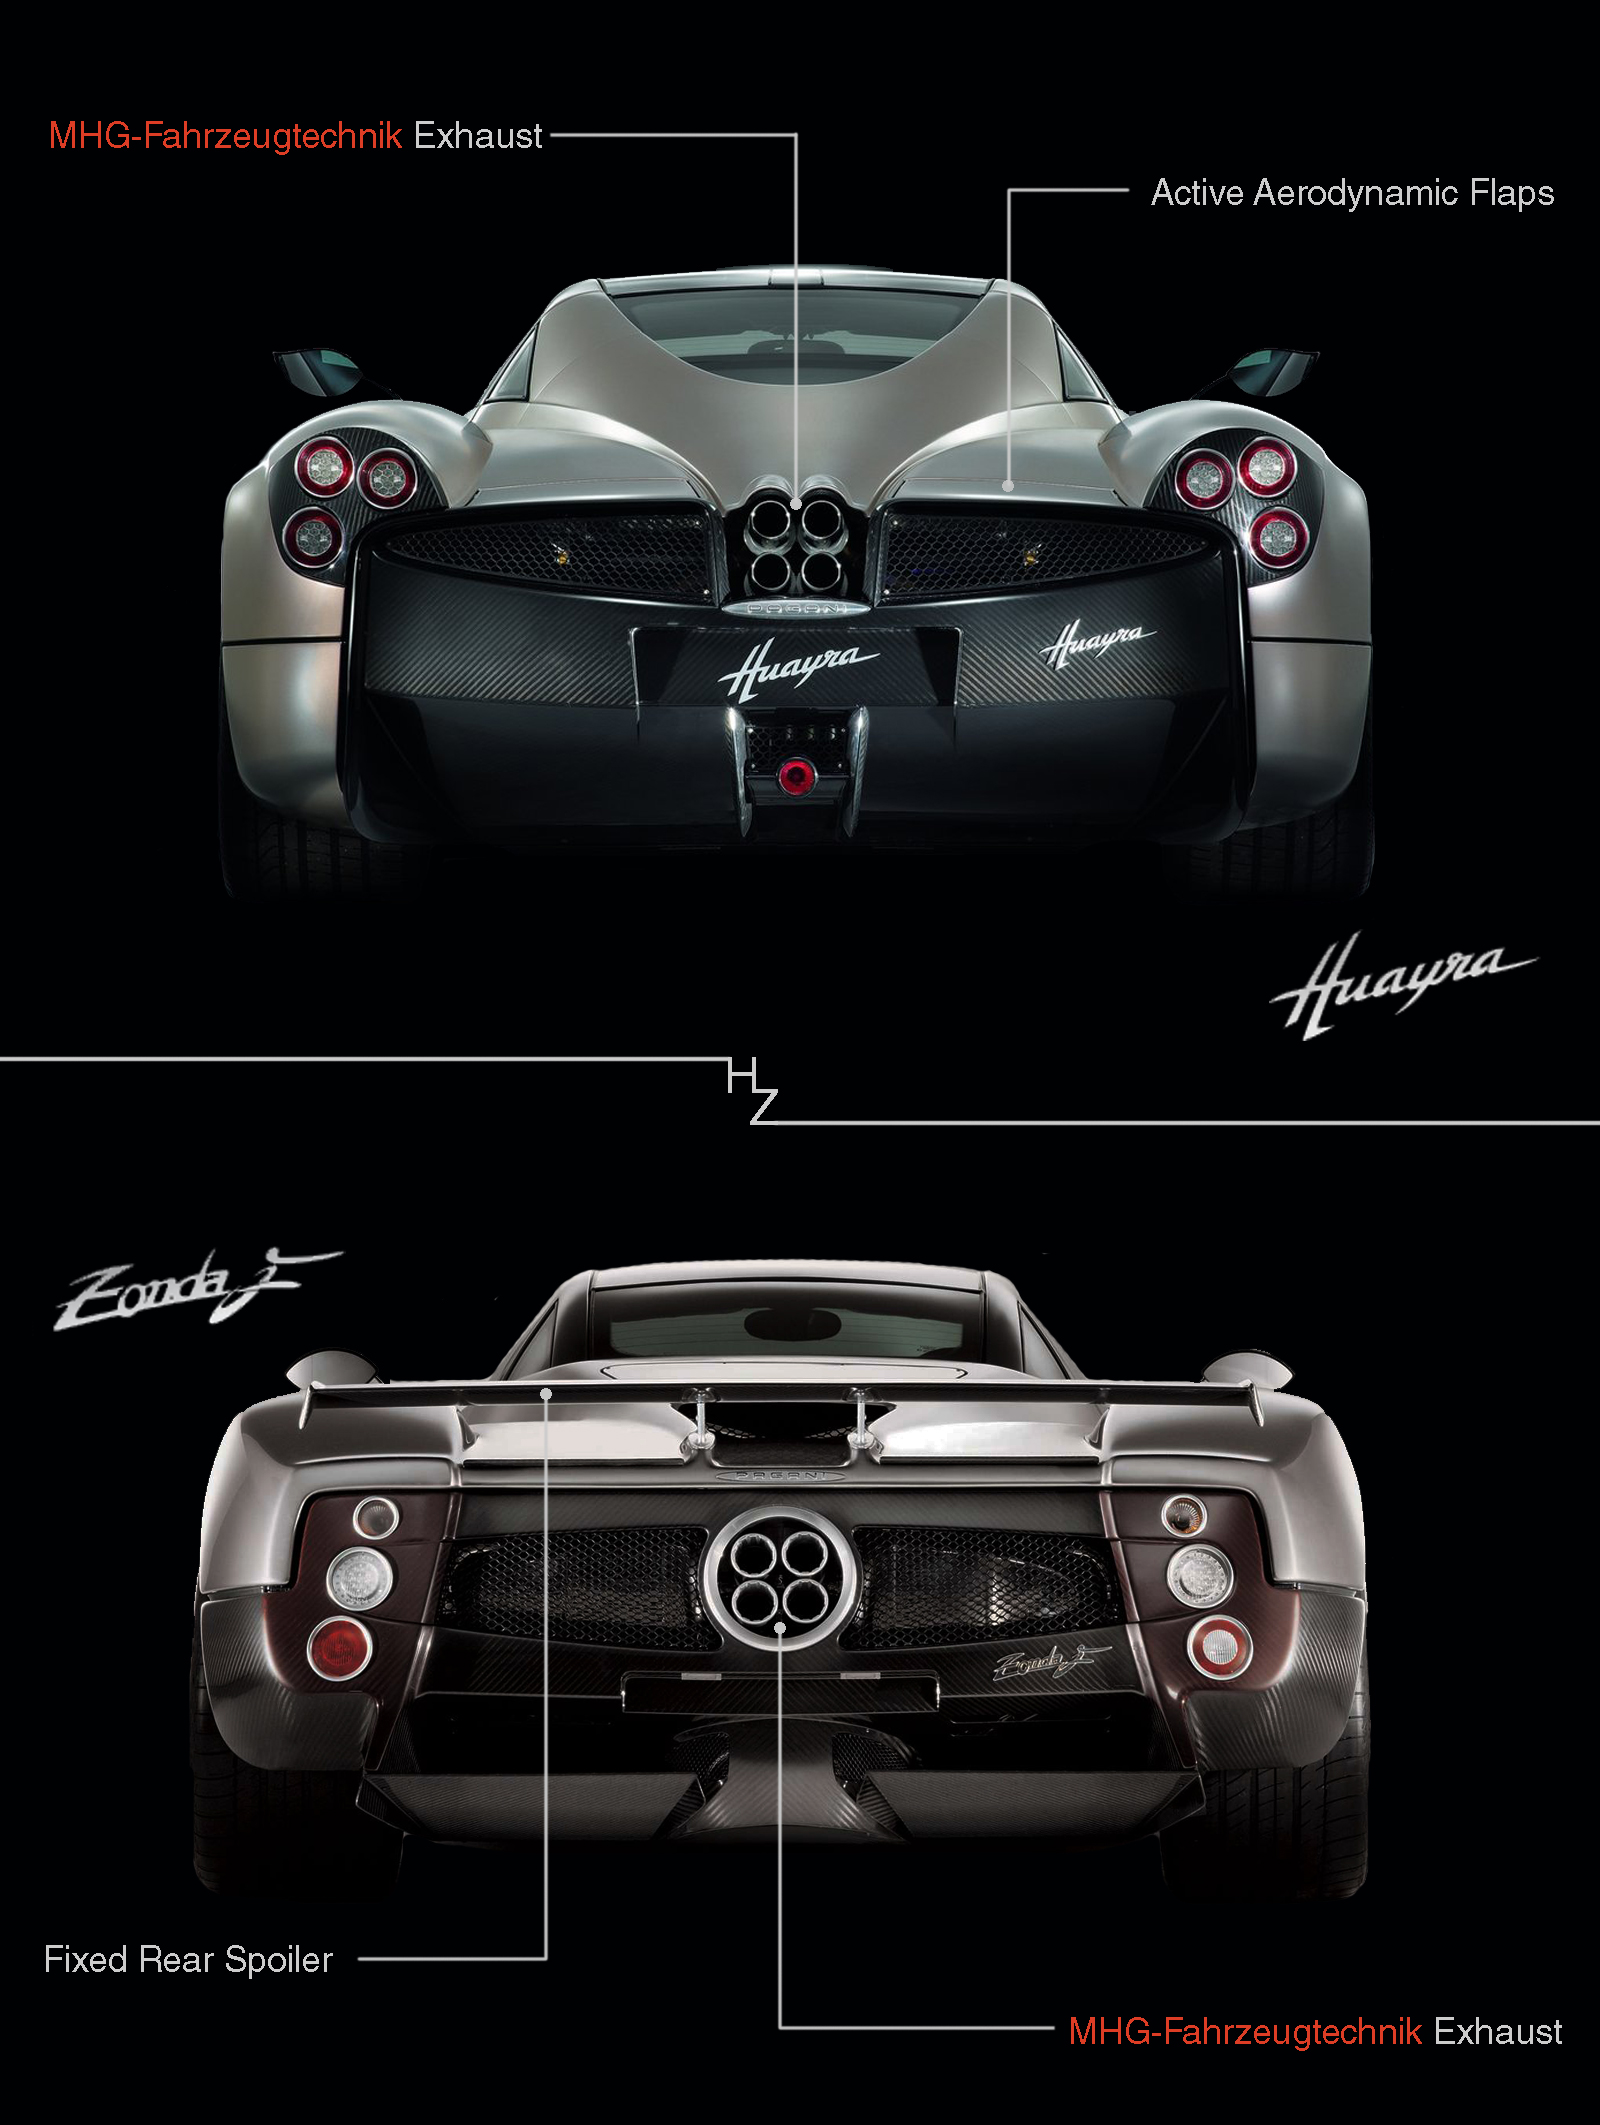 Supercar, Pagani, Huayra, Zonda, Legacy, Comparison, exhaust, rear, spoiler